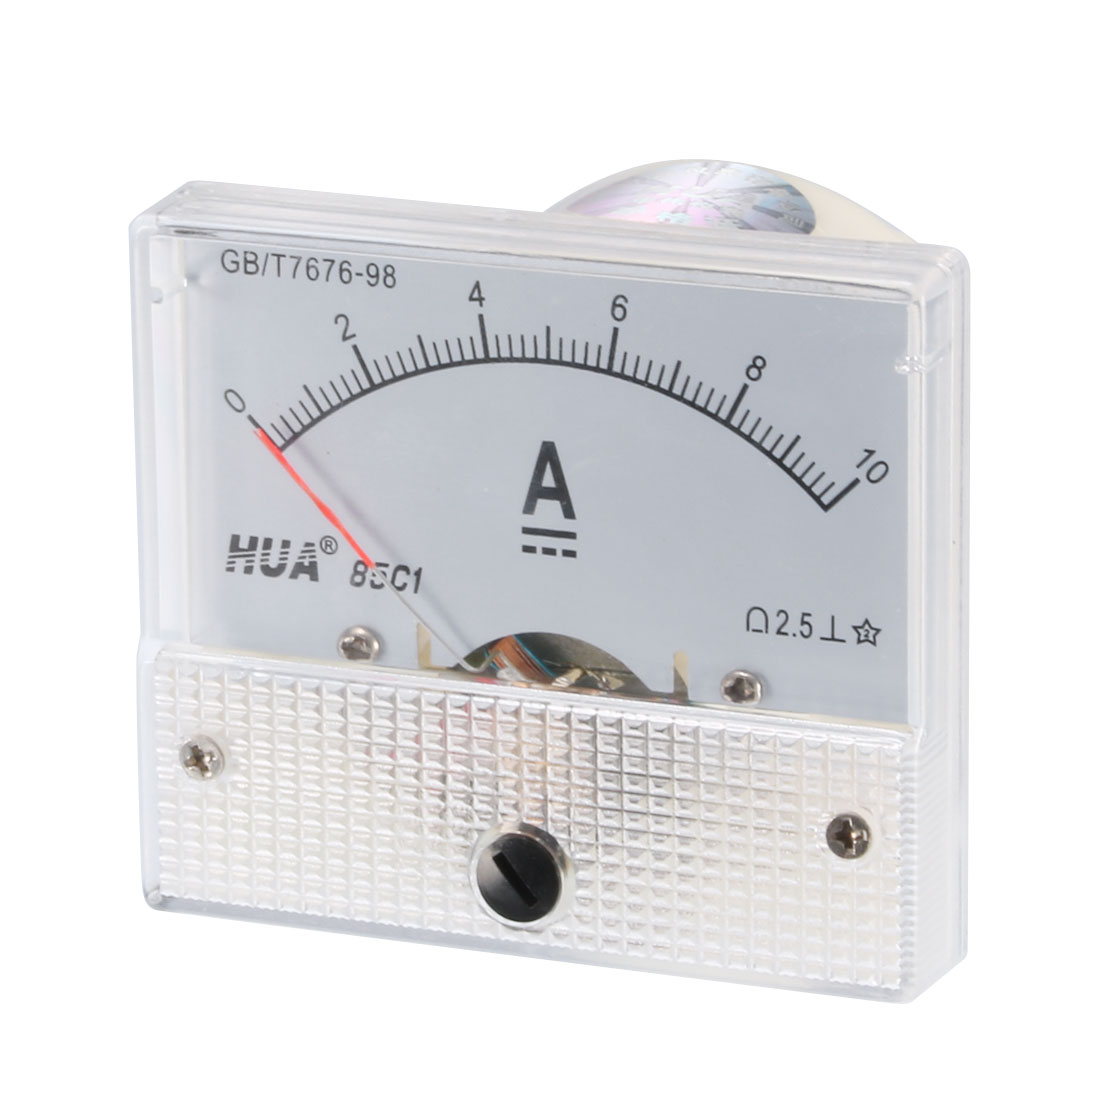 85C1 DC 0-10A Class 2.5 Accuracy Vertical Mounted Analog Ammeter Ampere Meter